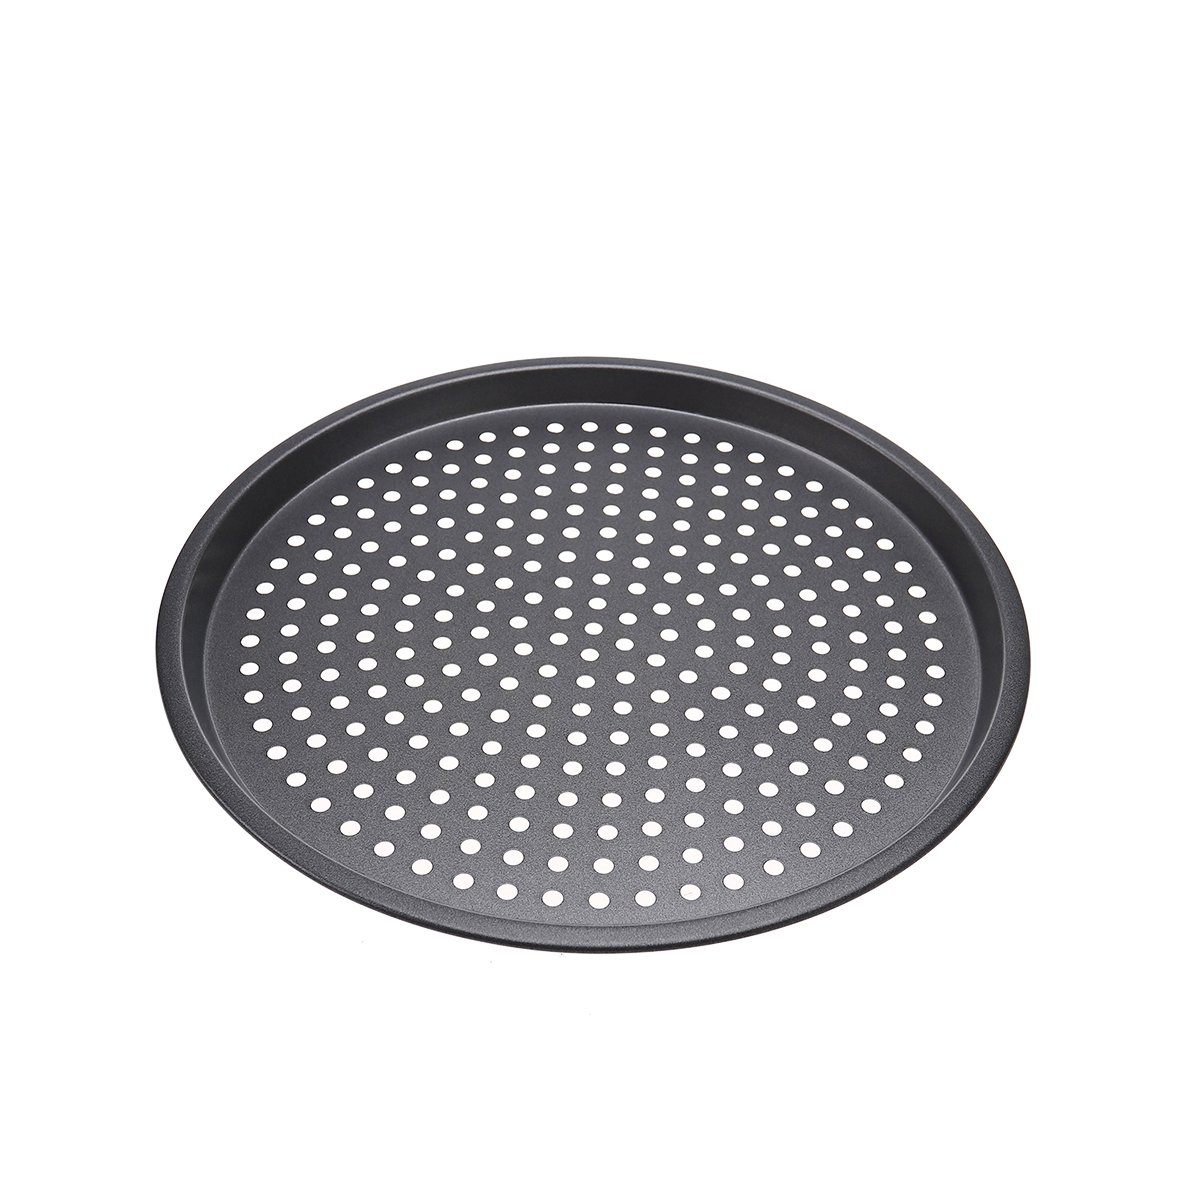 OUNONA 12-inch Non-Stick Pizza Crisper Tray,Nonstick Pizza Pan Baking Tray Plate with Holes